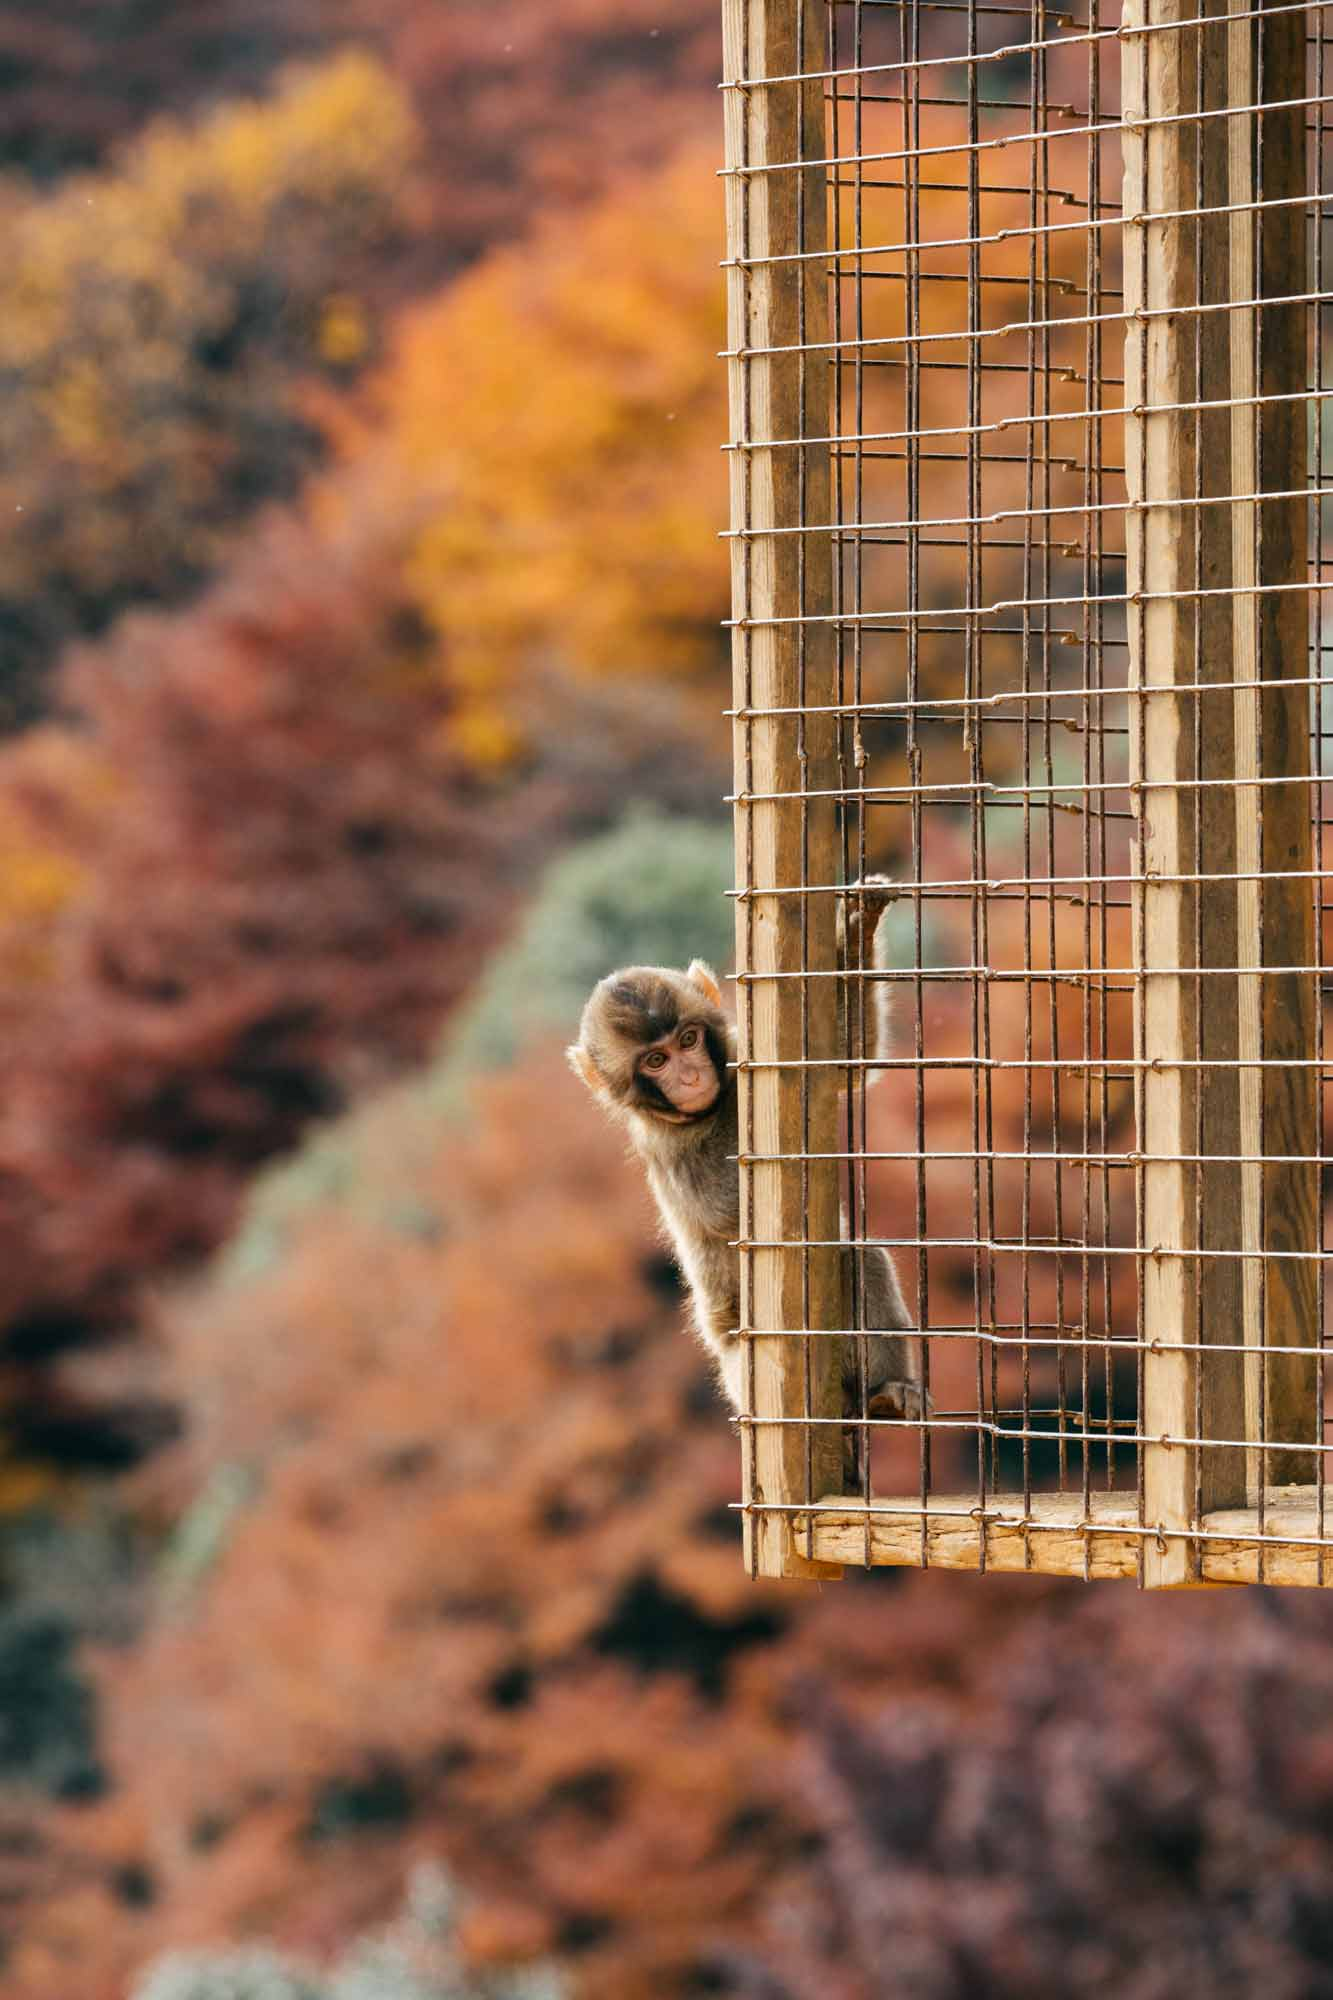 A small monkey hangs on a wire cage in Japan.